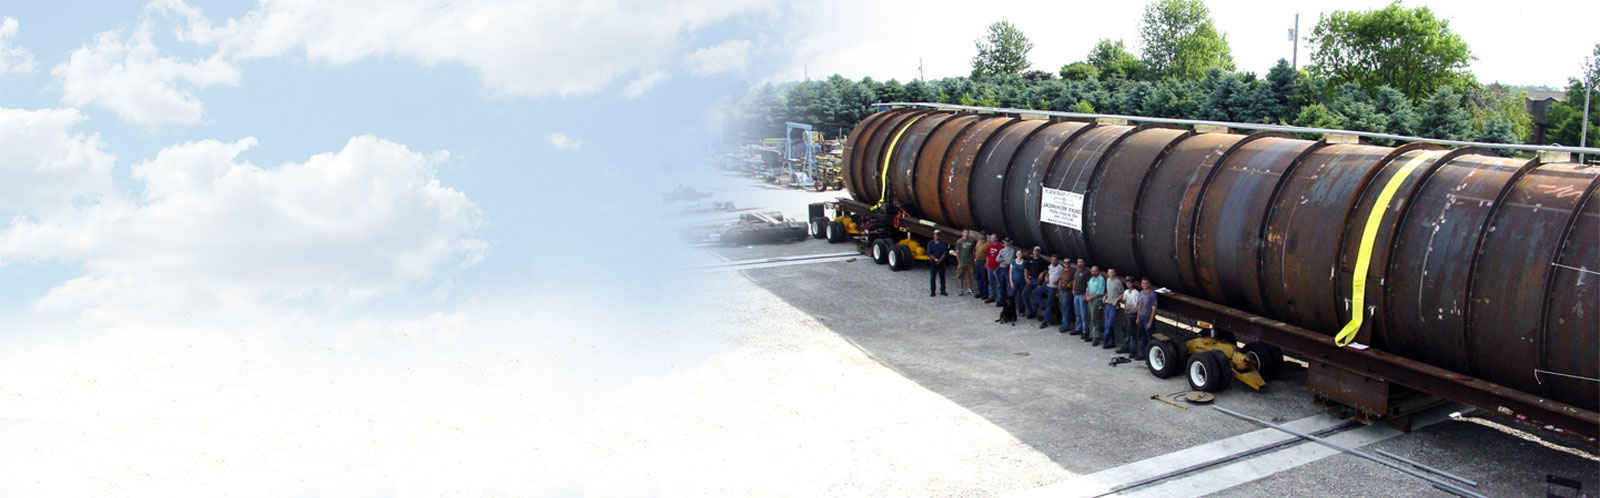 pressure-vessels-manufacturer-team